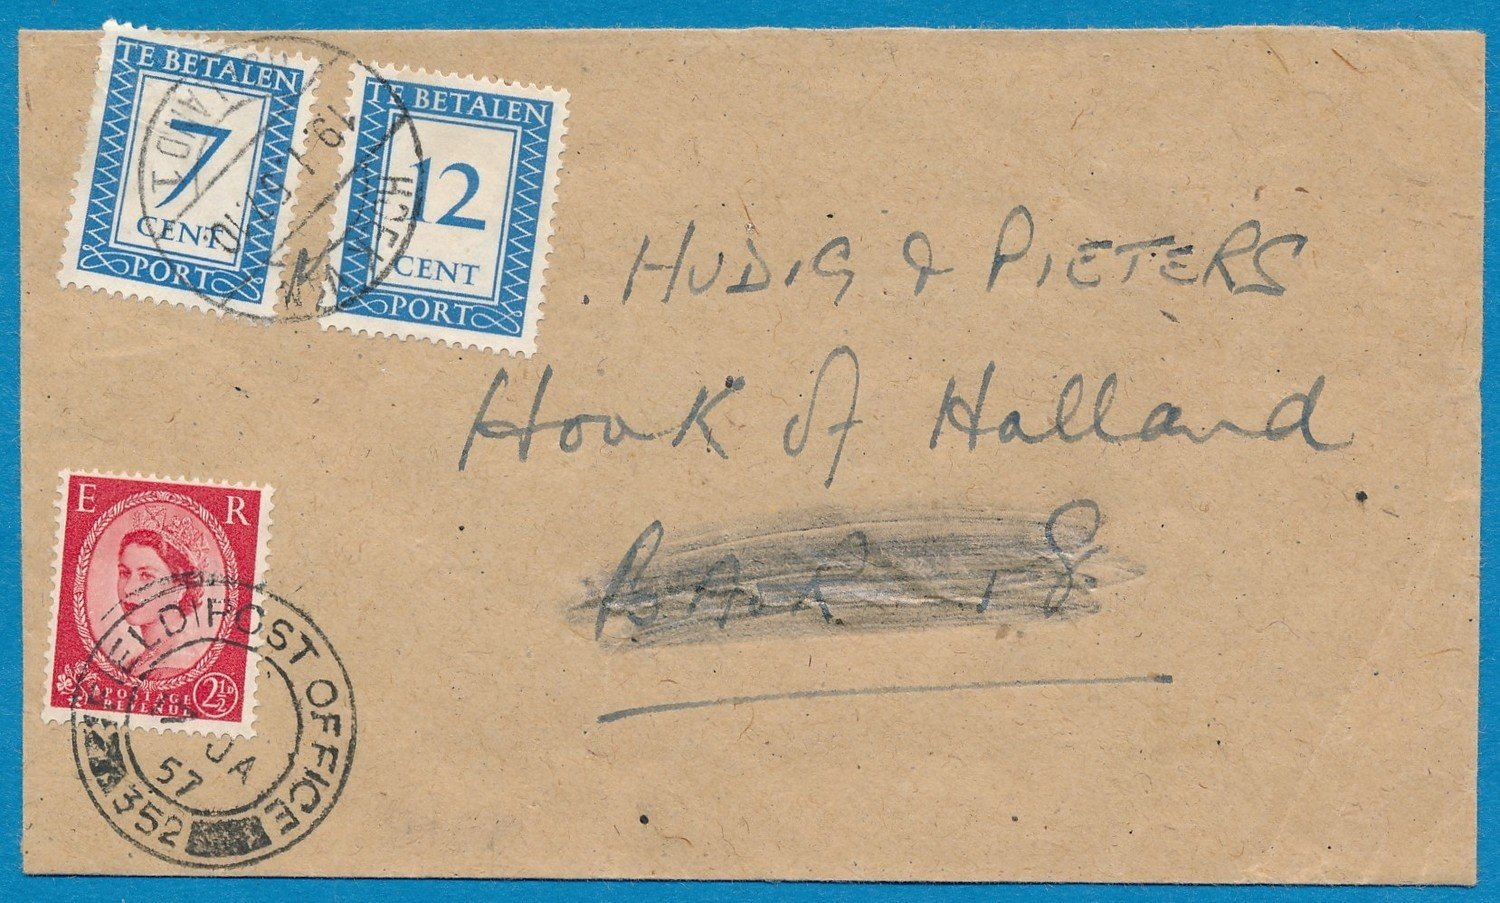 ENGELAND brief 1957 FPO 352 beport Hoek van Holland